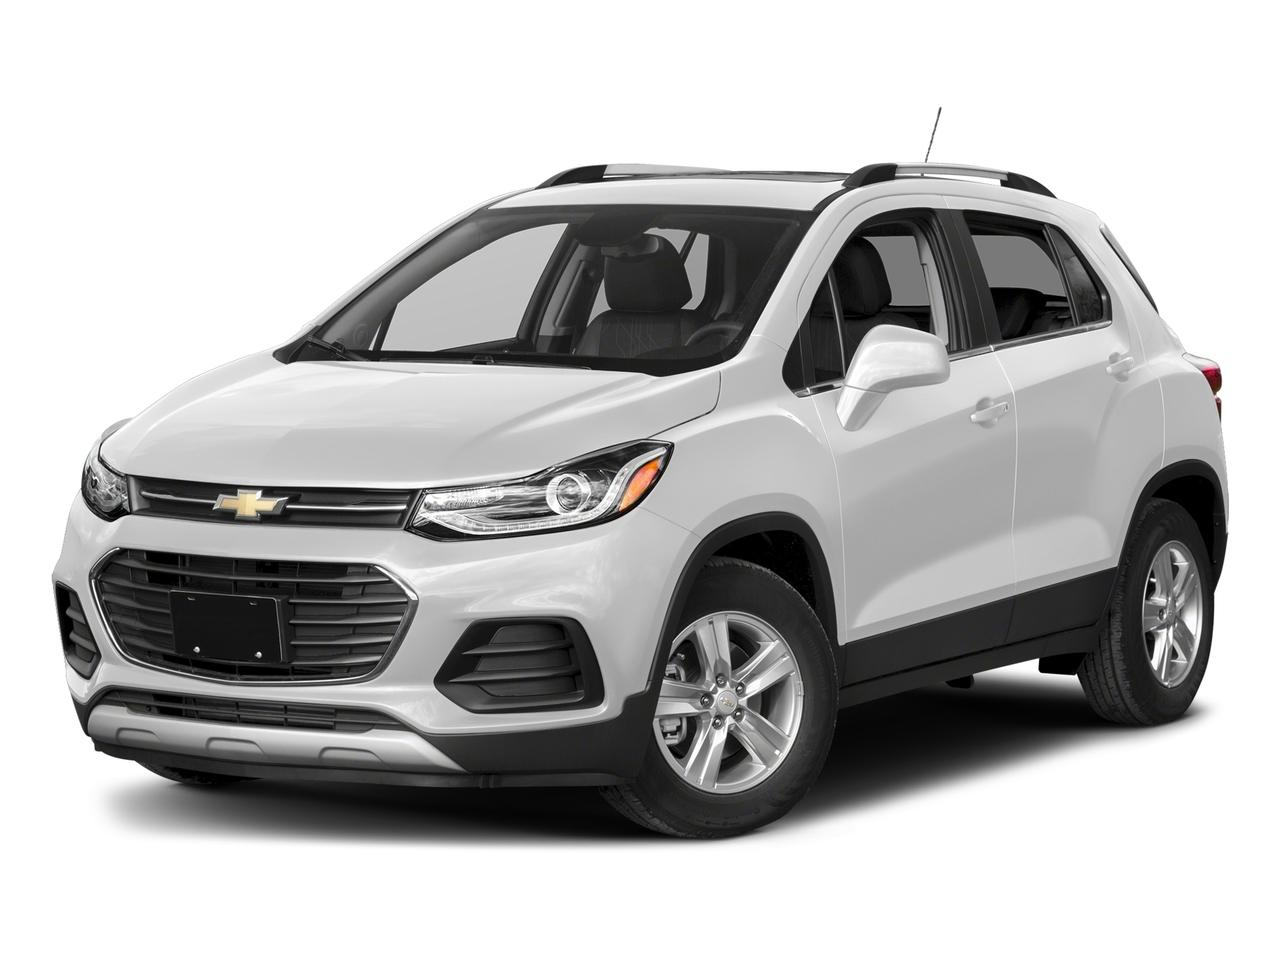 2017 Chevrolet Trax Vehicle Photo in San Angelo, TX 76901